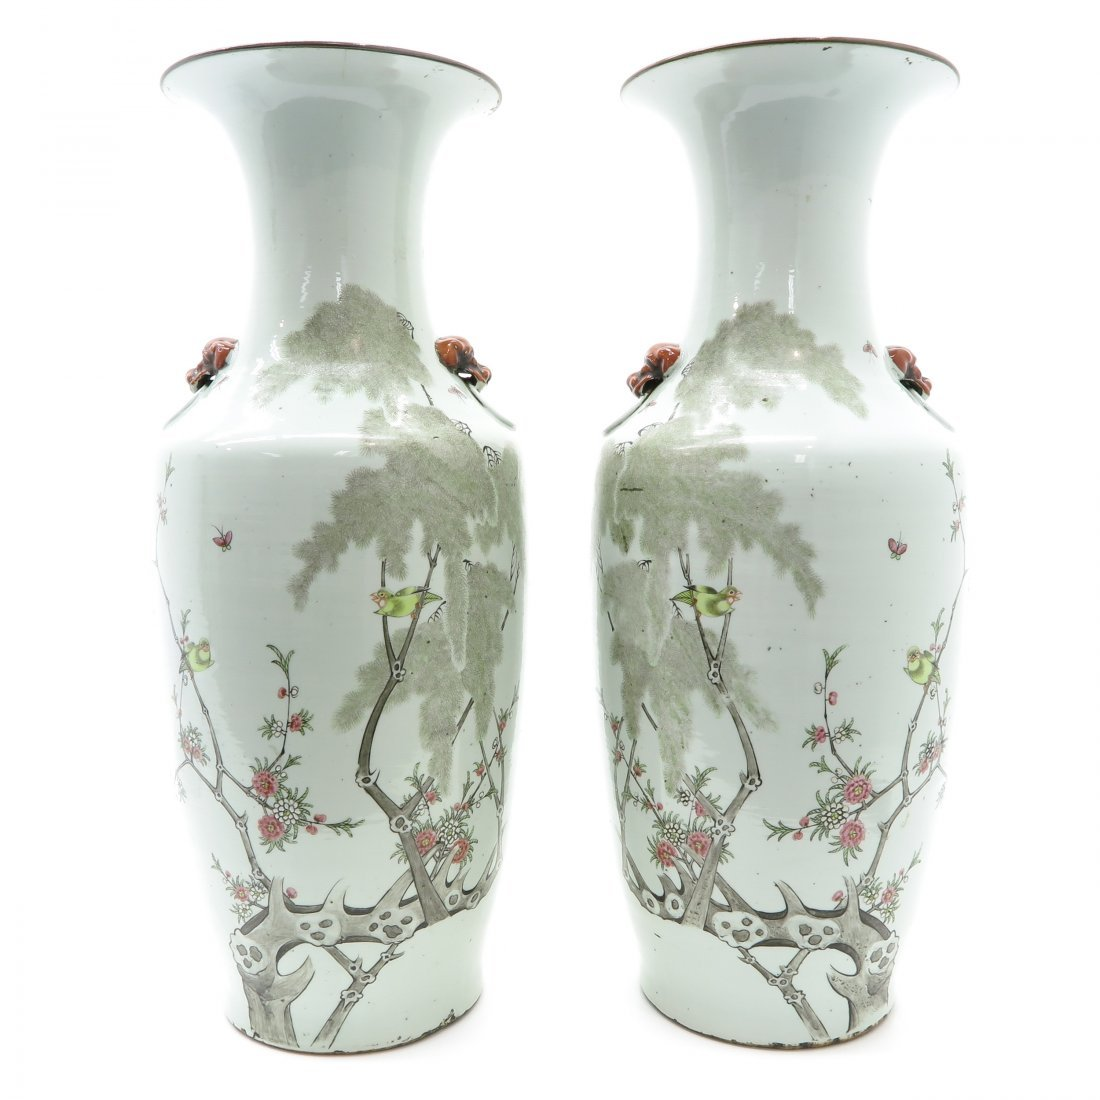 Pair of Polychrome Decor China Porcelain Vases